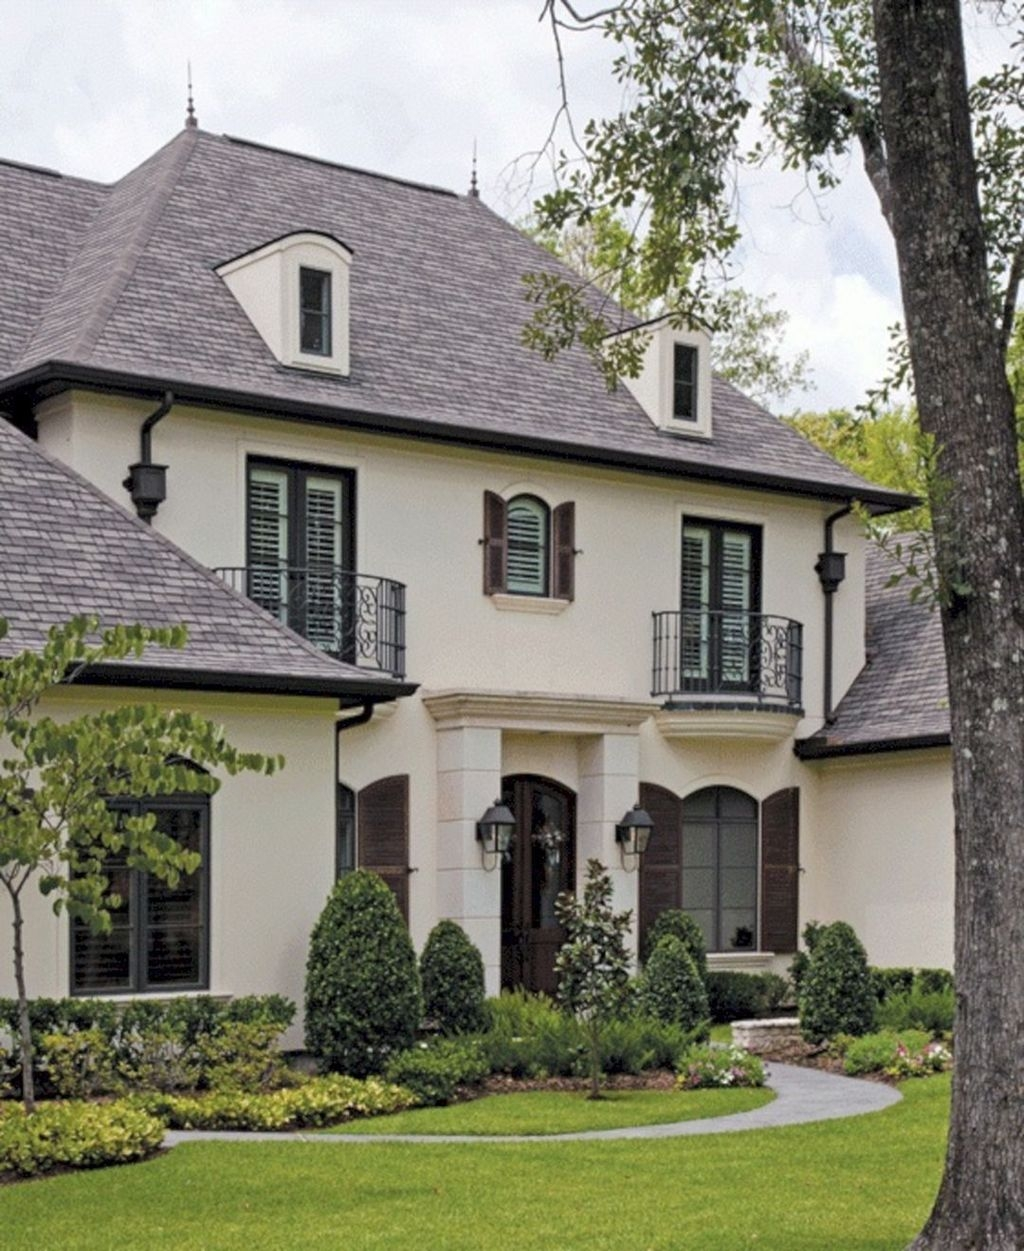 Stylish French Country Exterior For Your Home Design Inspiration 10